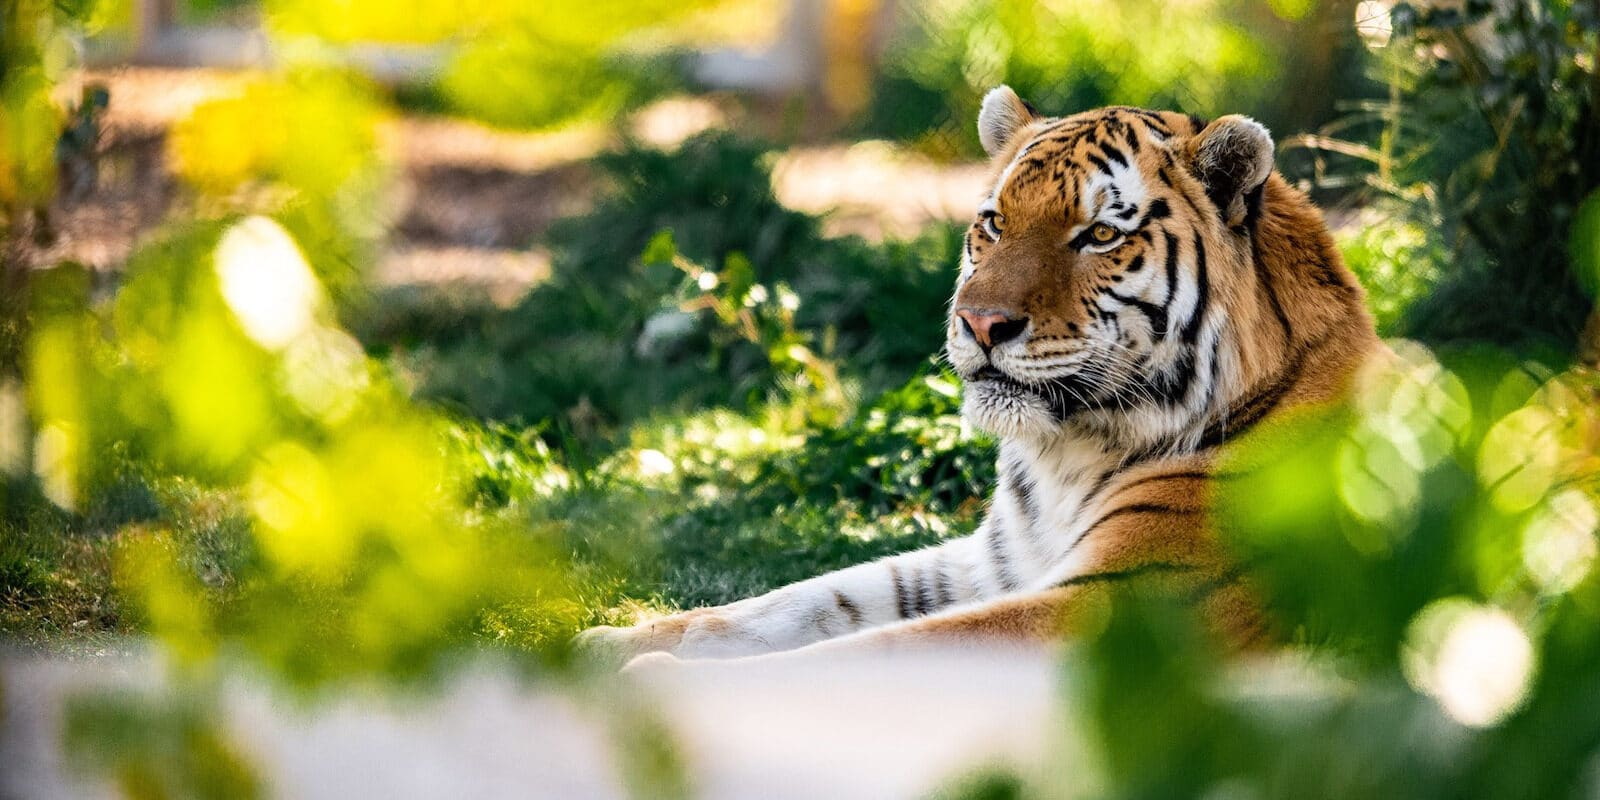 Image of a tier at the Denver Zoo